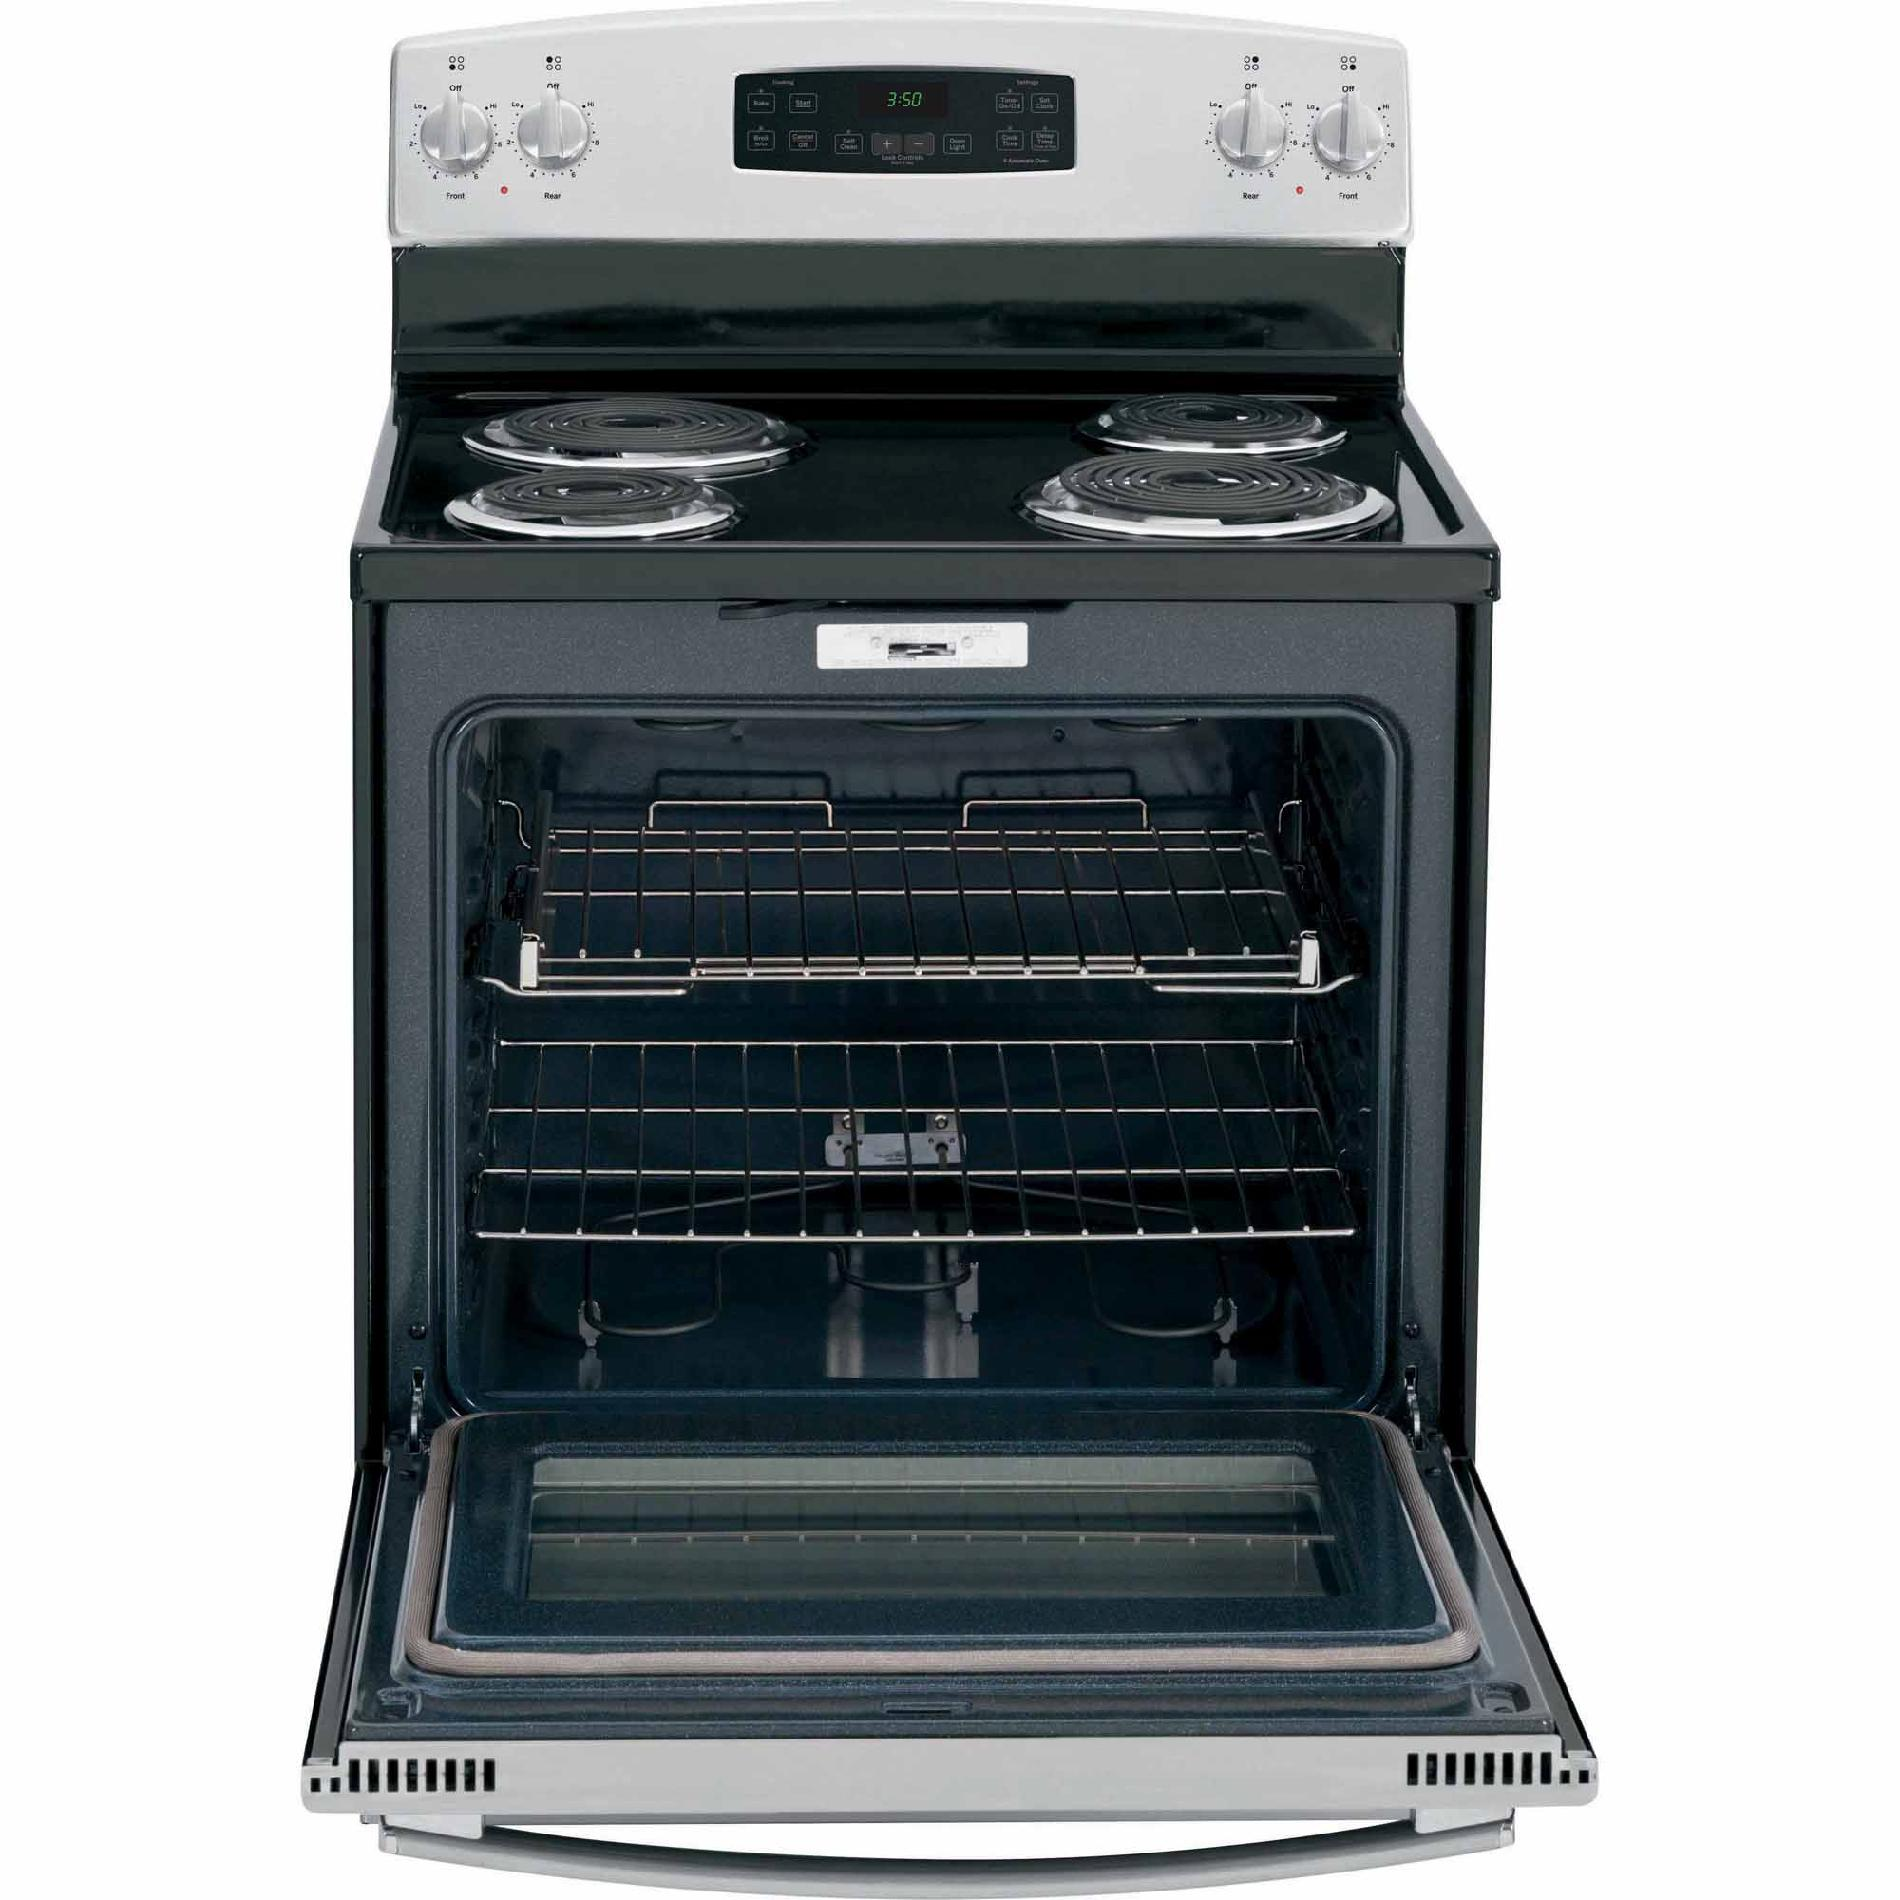 GE Appliances 5.3 cu. ft. Electric Range - Stainless Steel